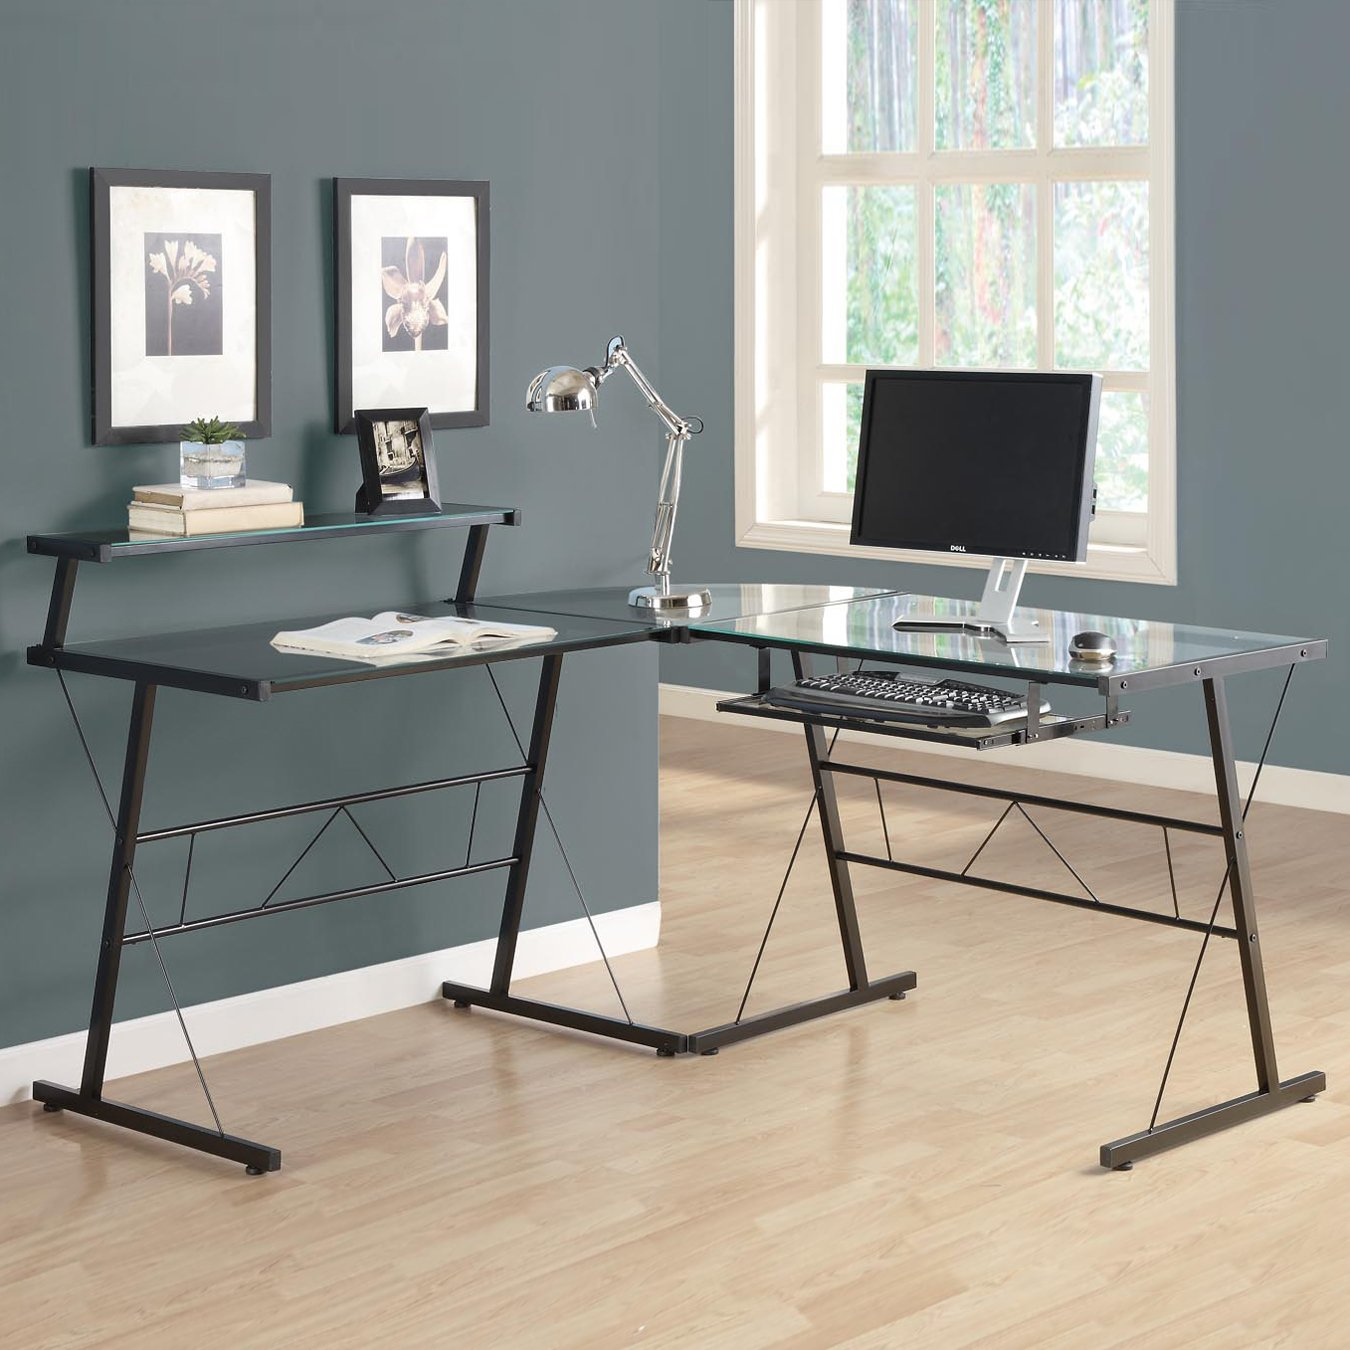 Miraculous L Shaped Computer Desk By Monarch Specialties Home Interior And Landscaping Eliaenasavecom